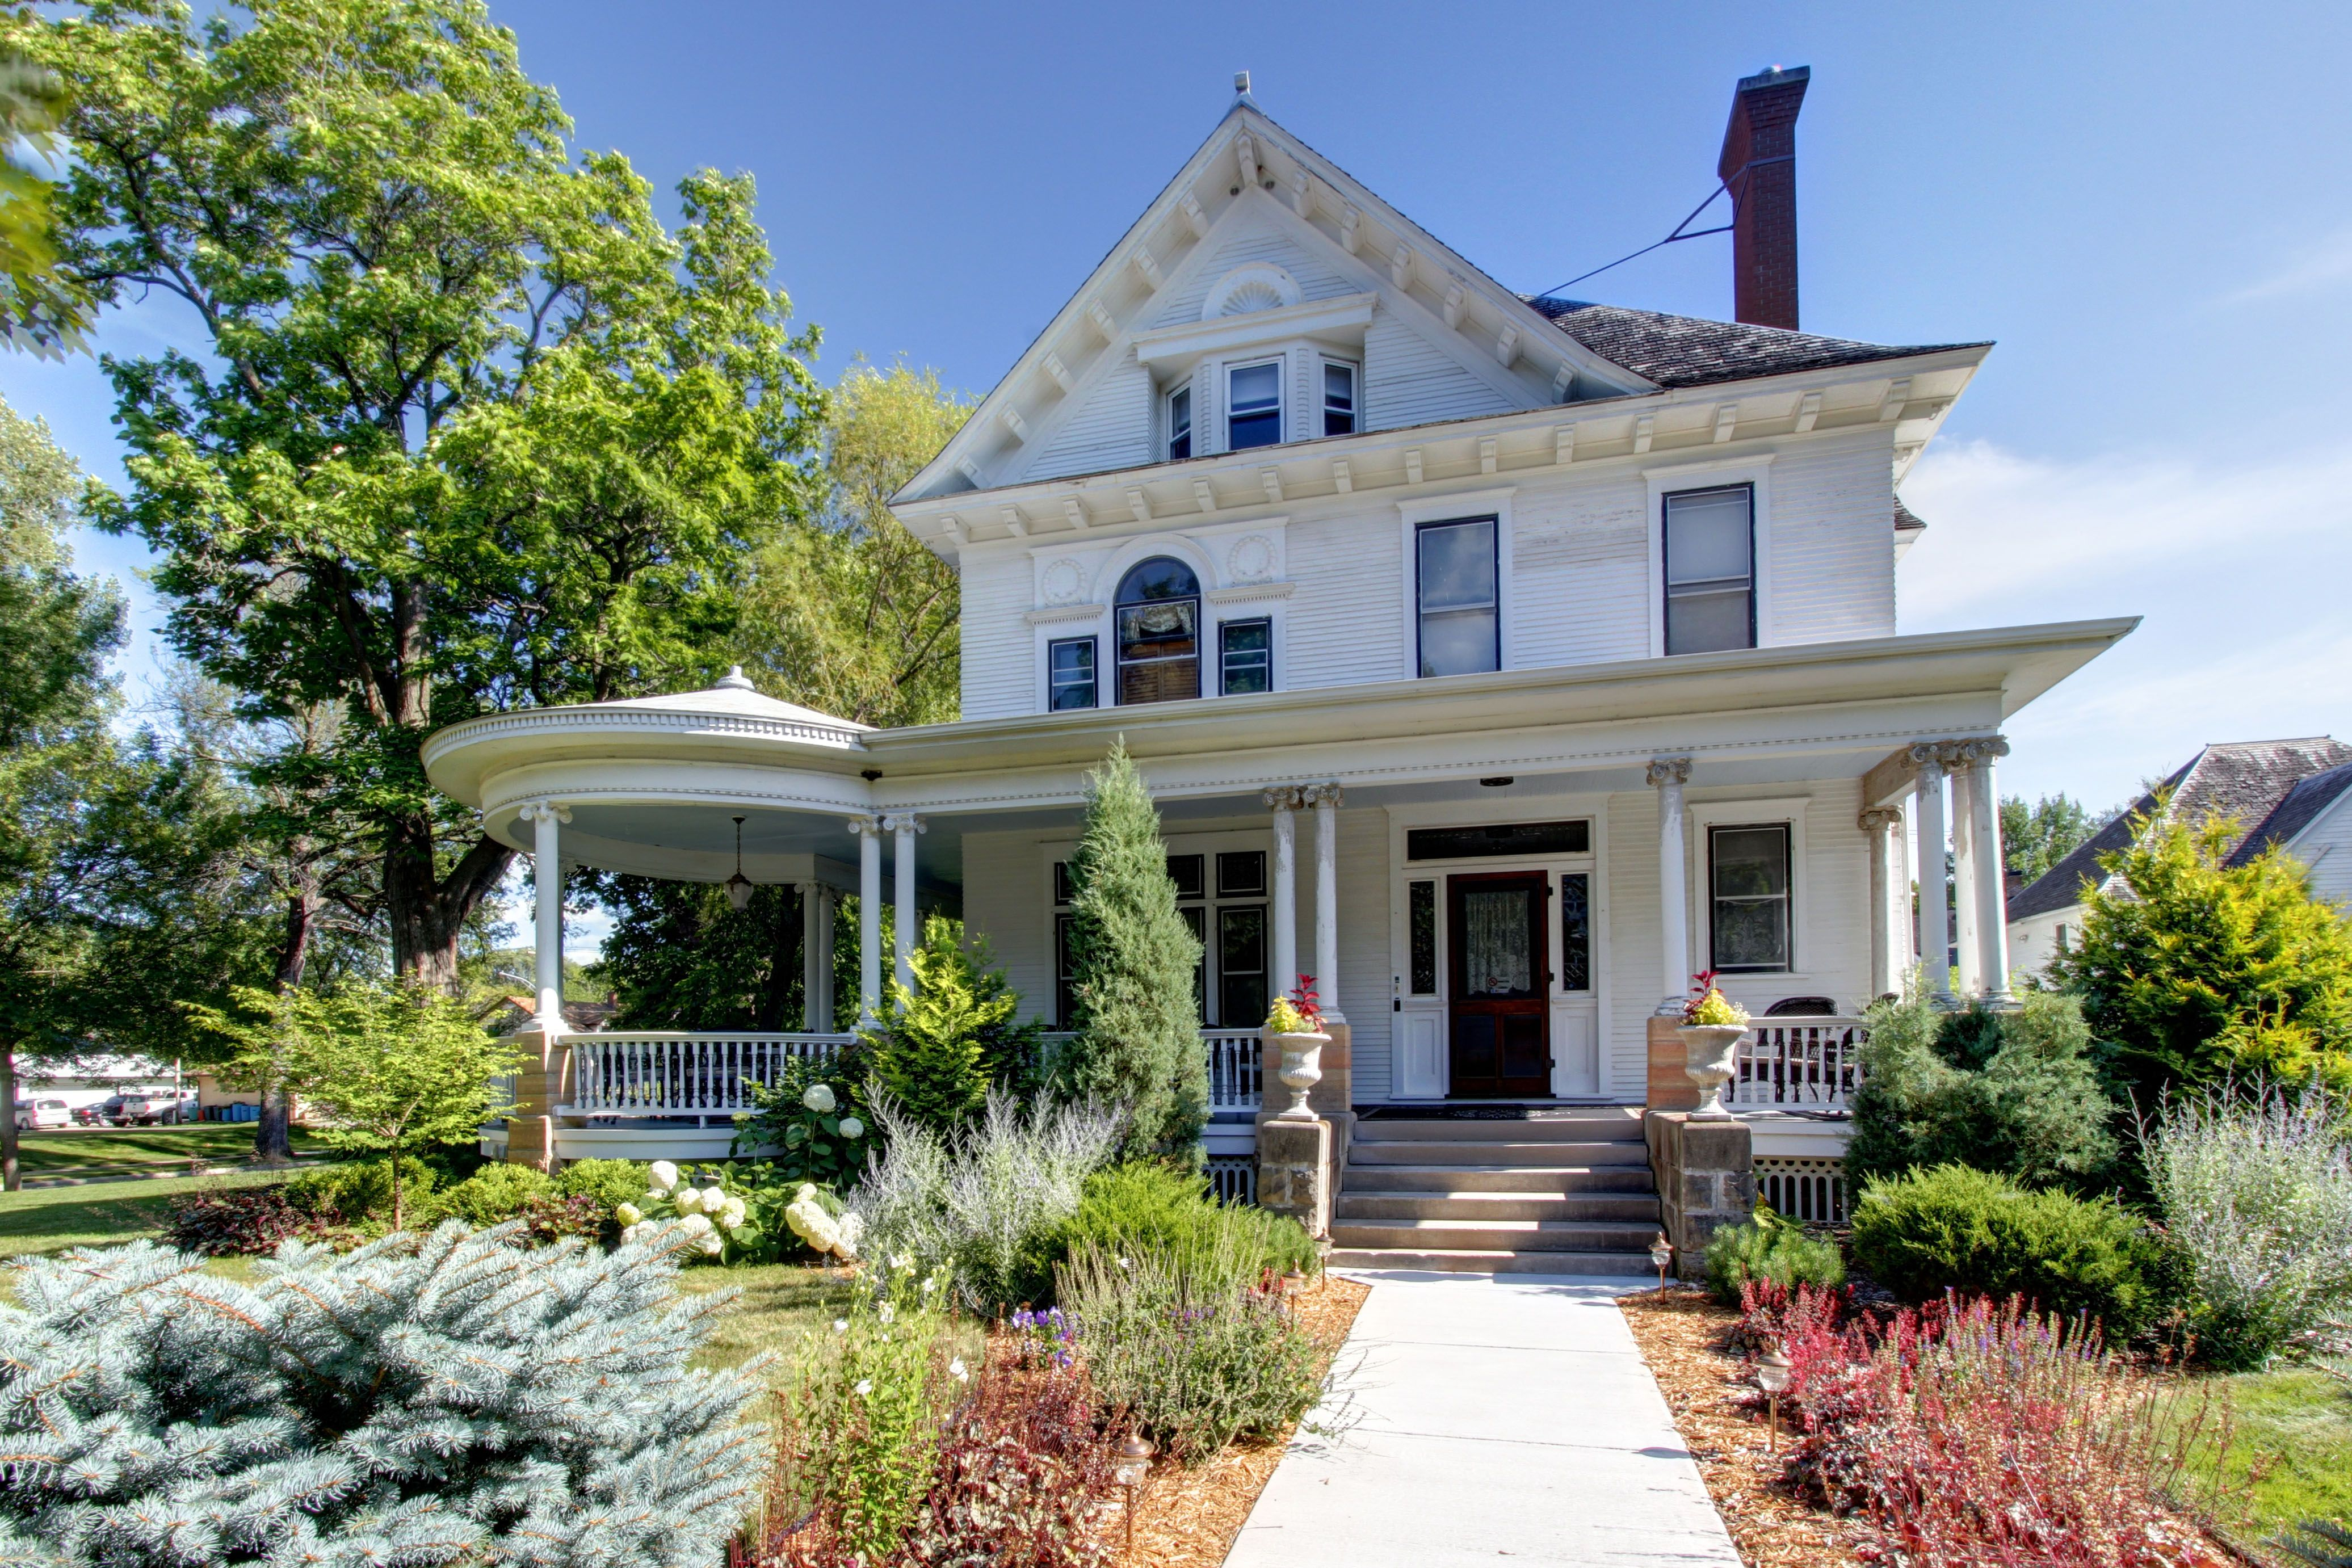 Historic William W Smith House In Sleepy Eye Mn Old Houses For Sale City House Historic Homes